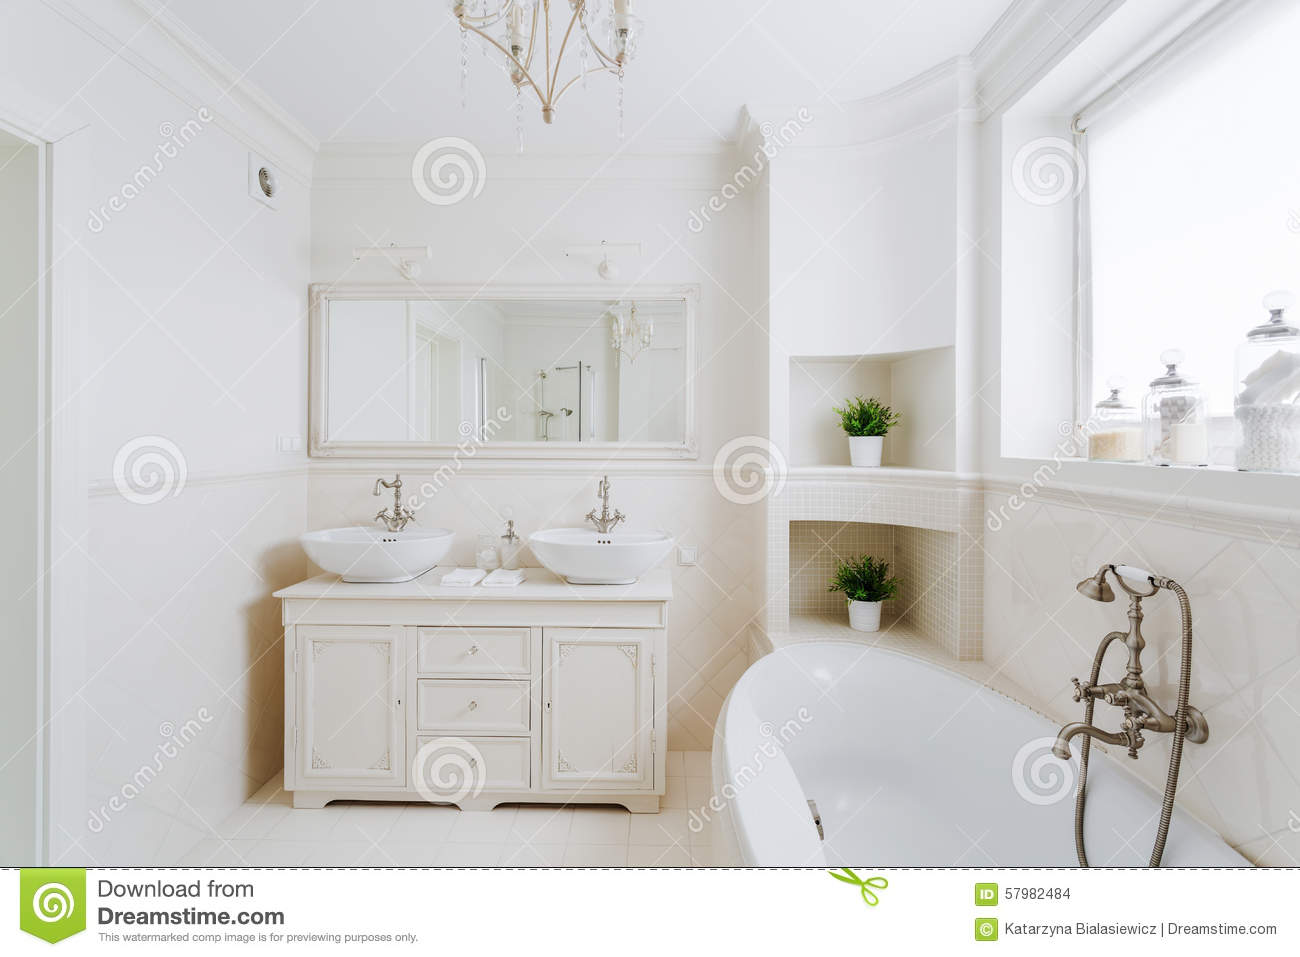 #85A724 Bathroom In The French Style Stock Photo Image: 57982484 1300x957 px Banheiro Frances 3141